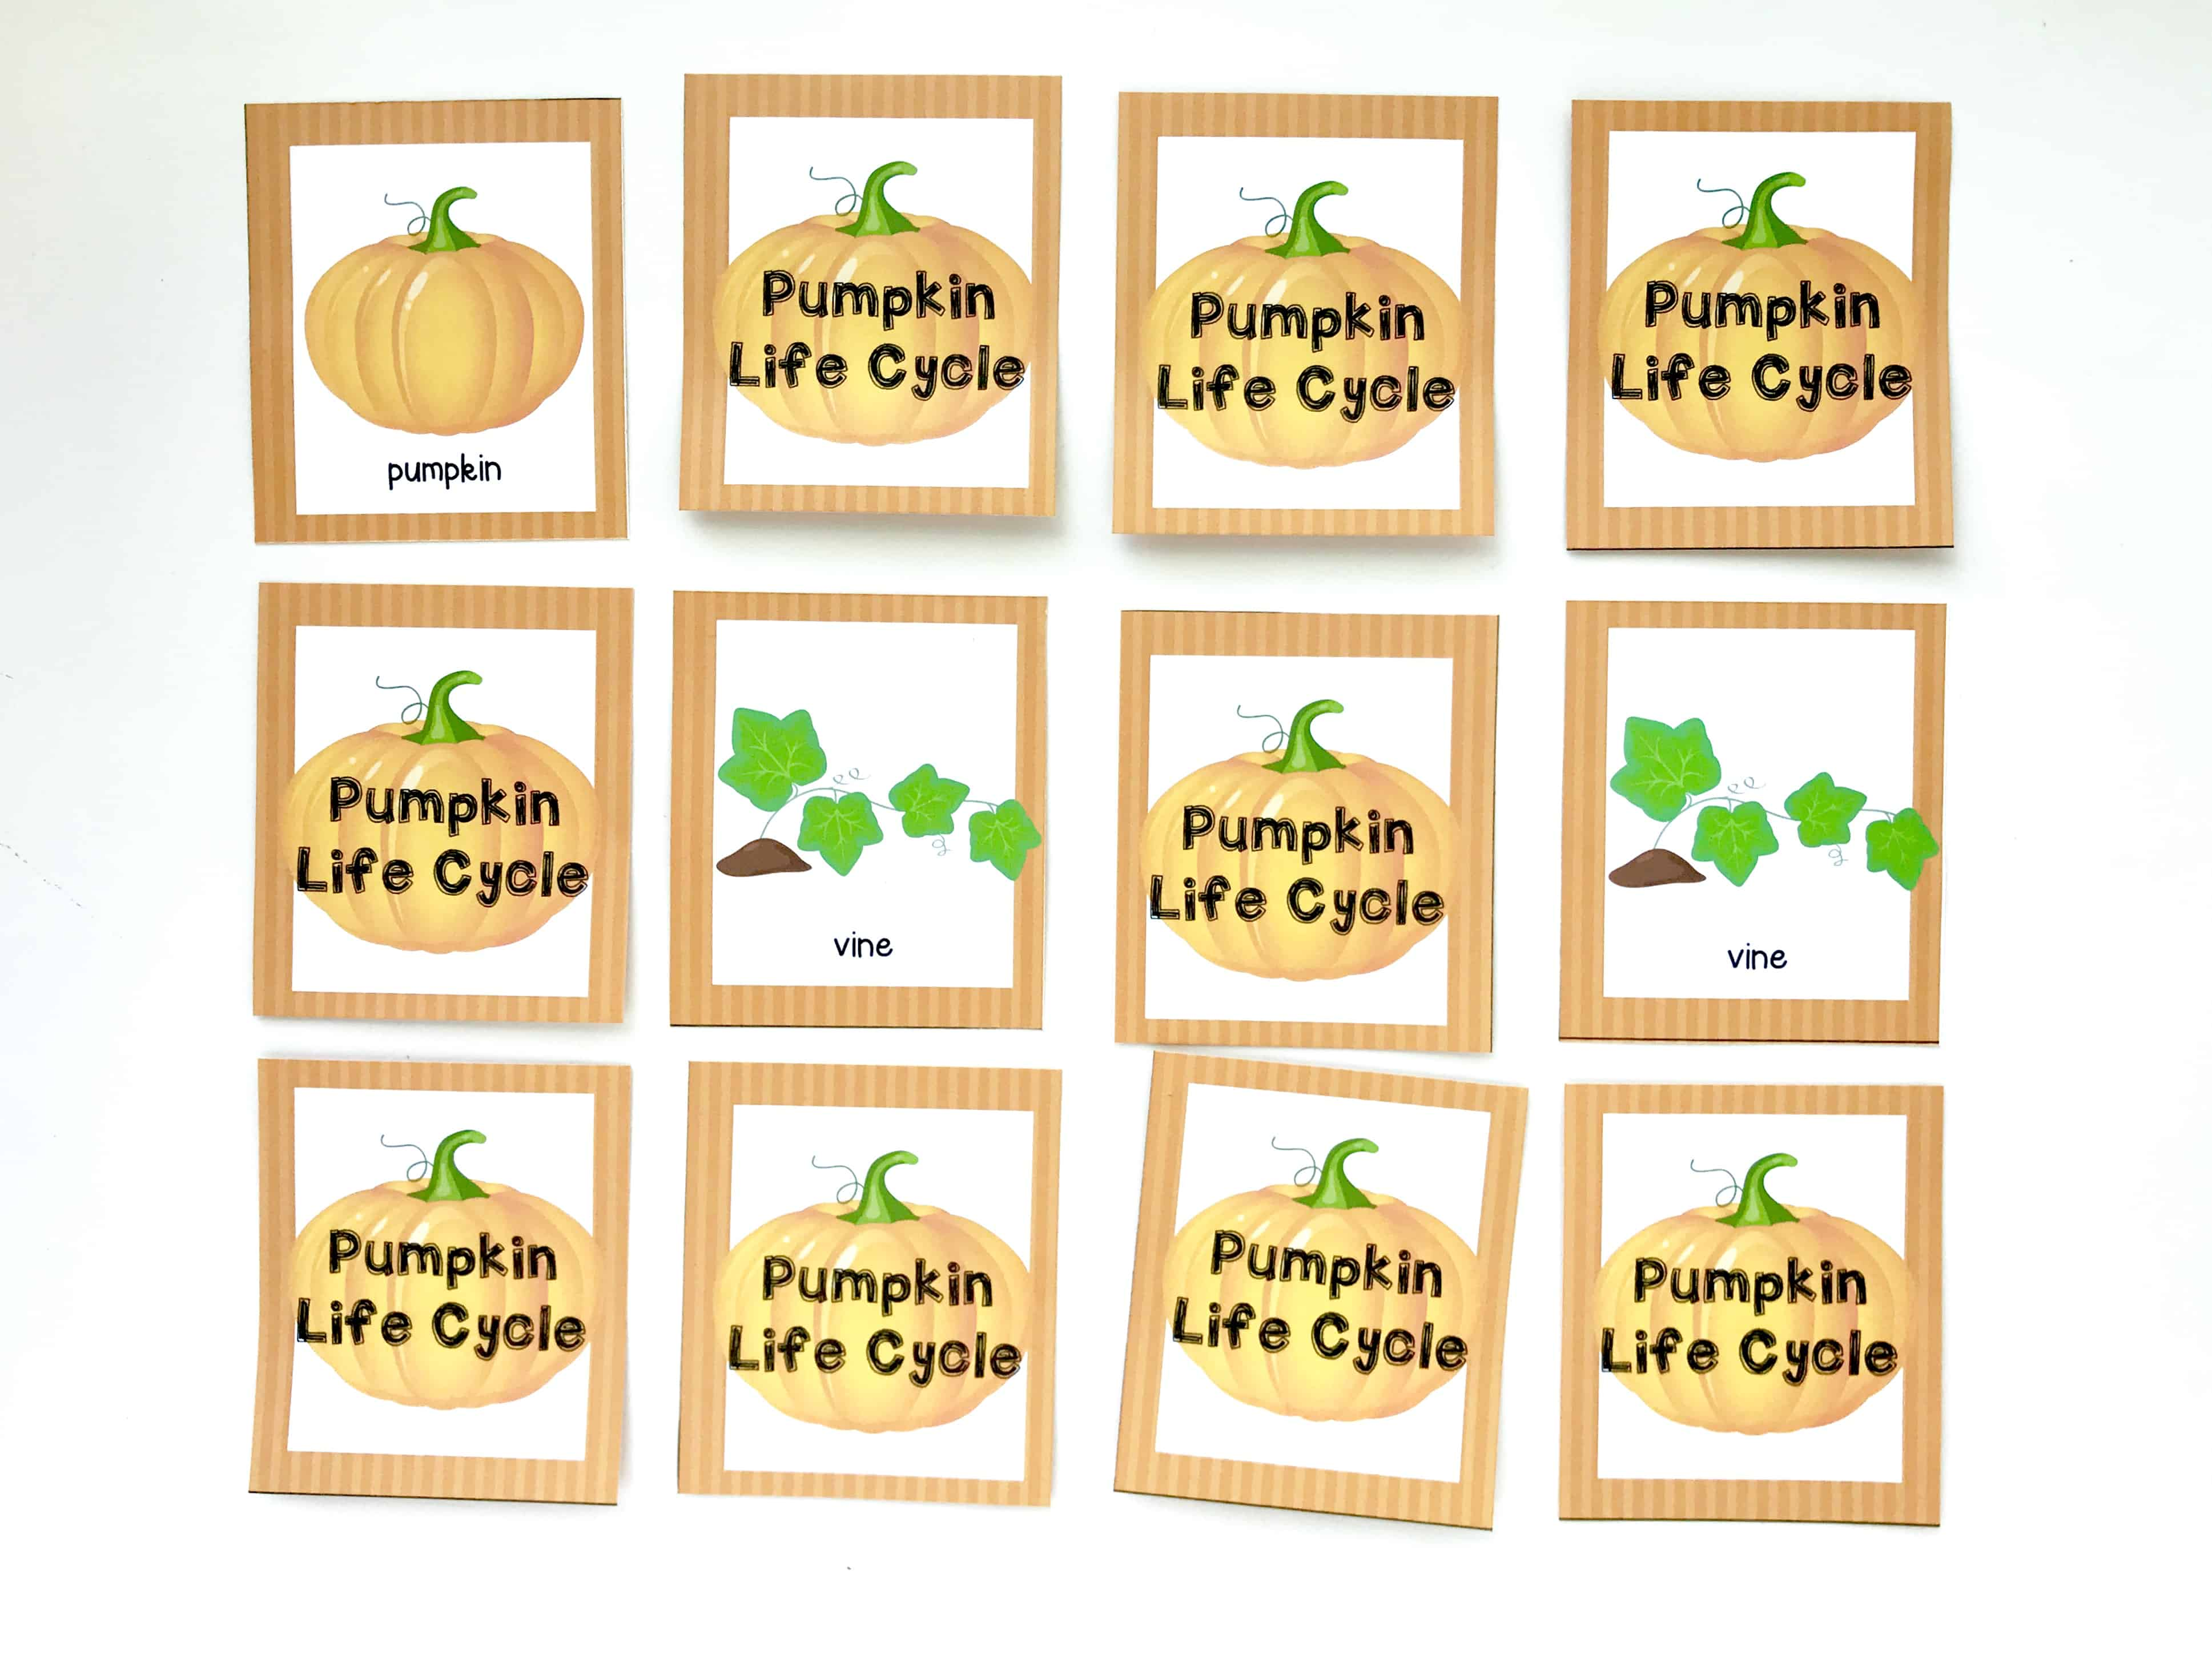 photograph relating to Pumpkin Life Cycle Printable titled Pumpkin Everyday living Cycle Printable Memory Sport - I Can Practice My Kid!